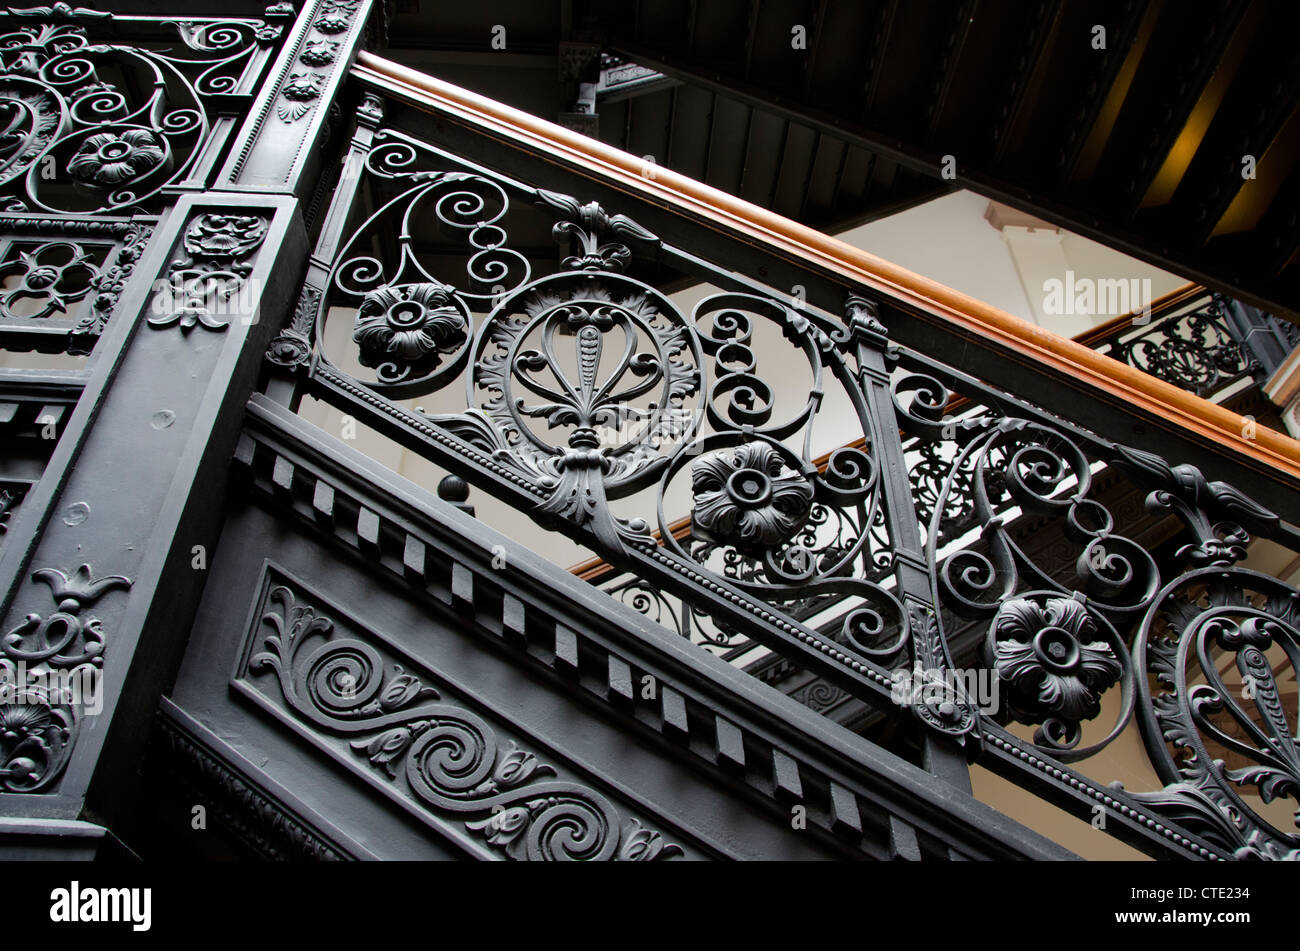 New York, Troy. The Historic Frear Building. Vintage Staircase With Ornate  Wrought